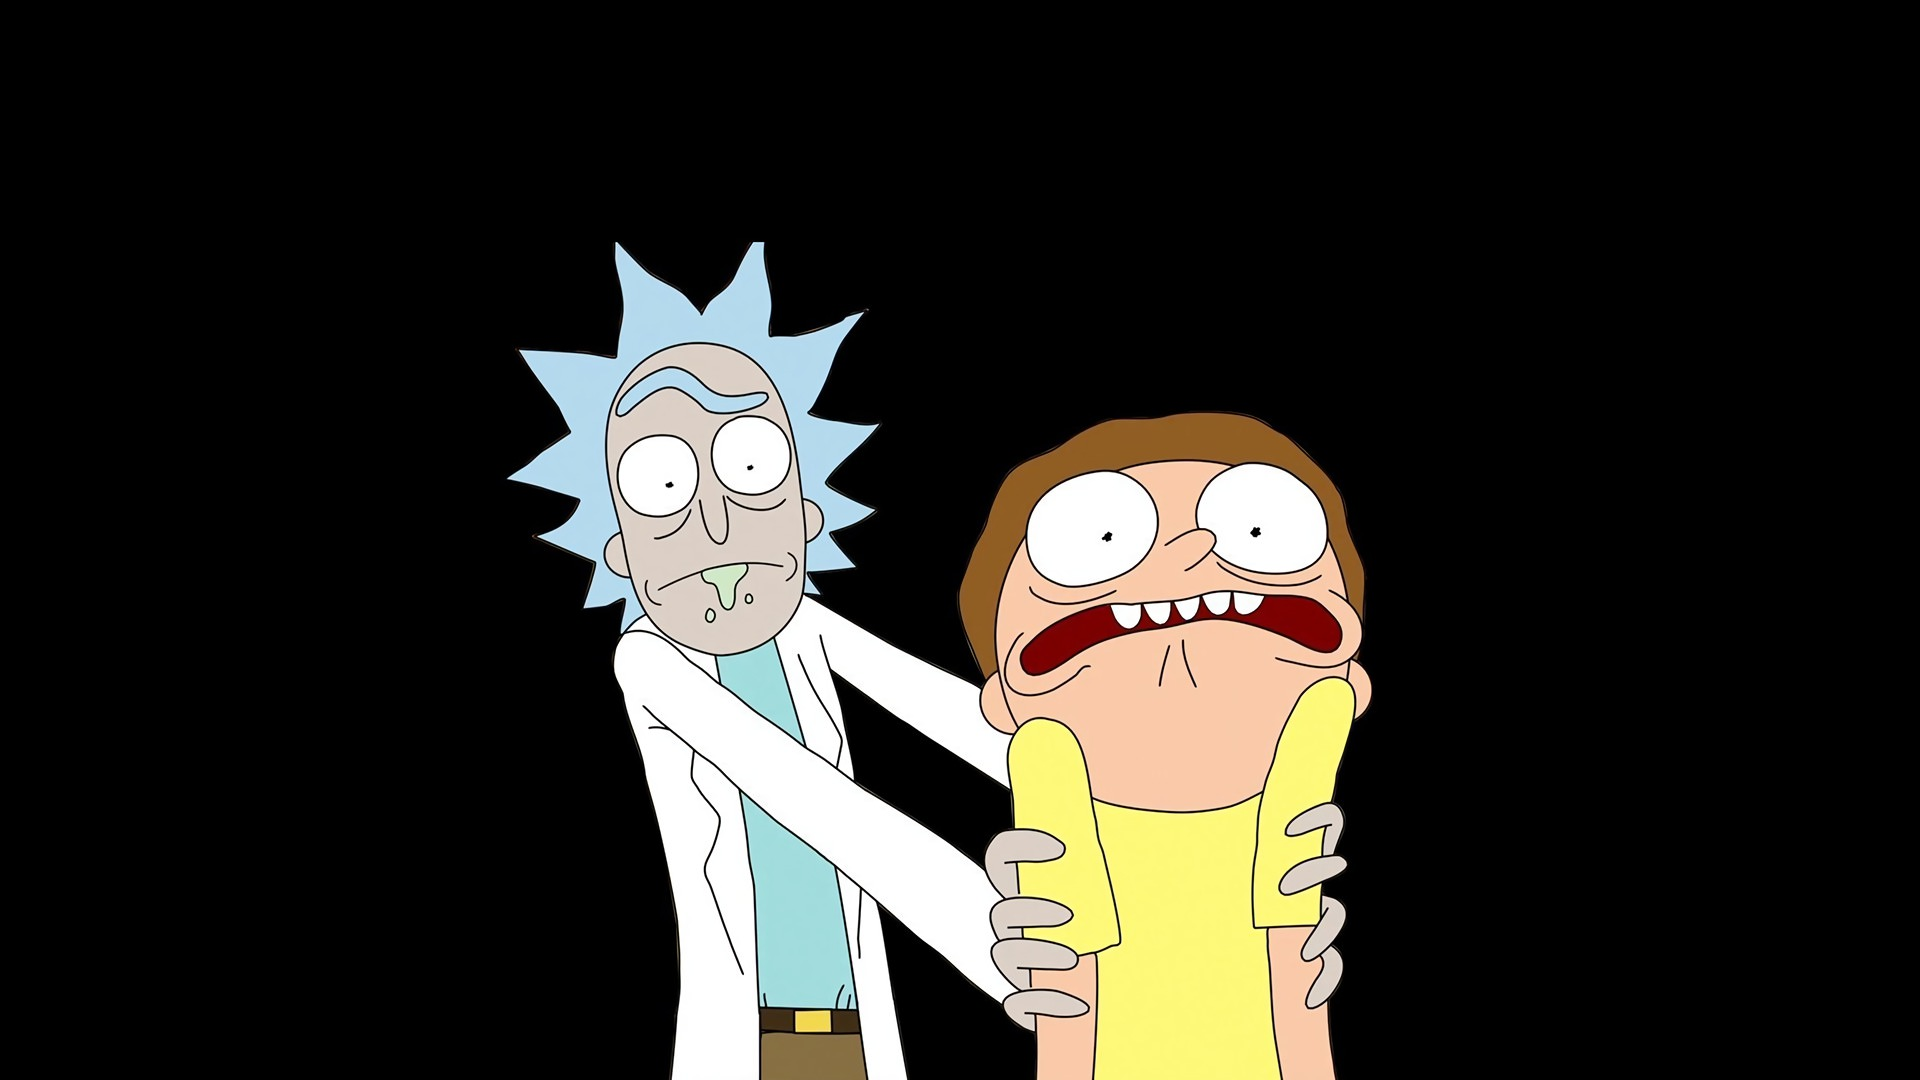 Rick And Morty Laptop Wallpapers Top Free Rick And Morty Laptop